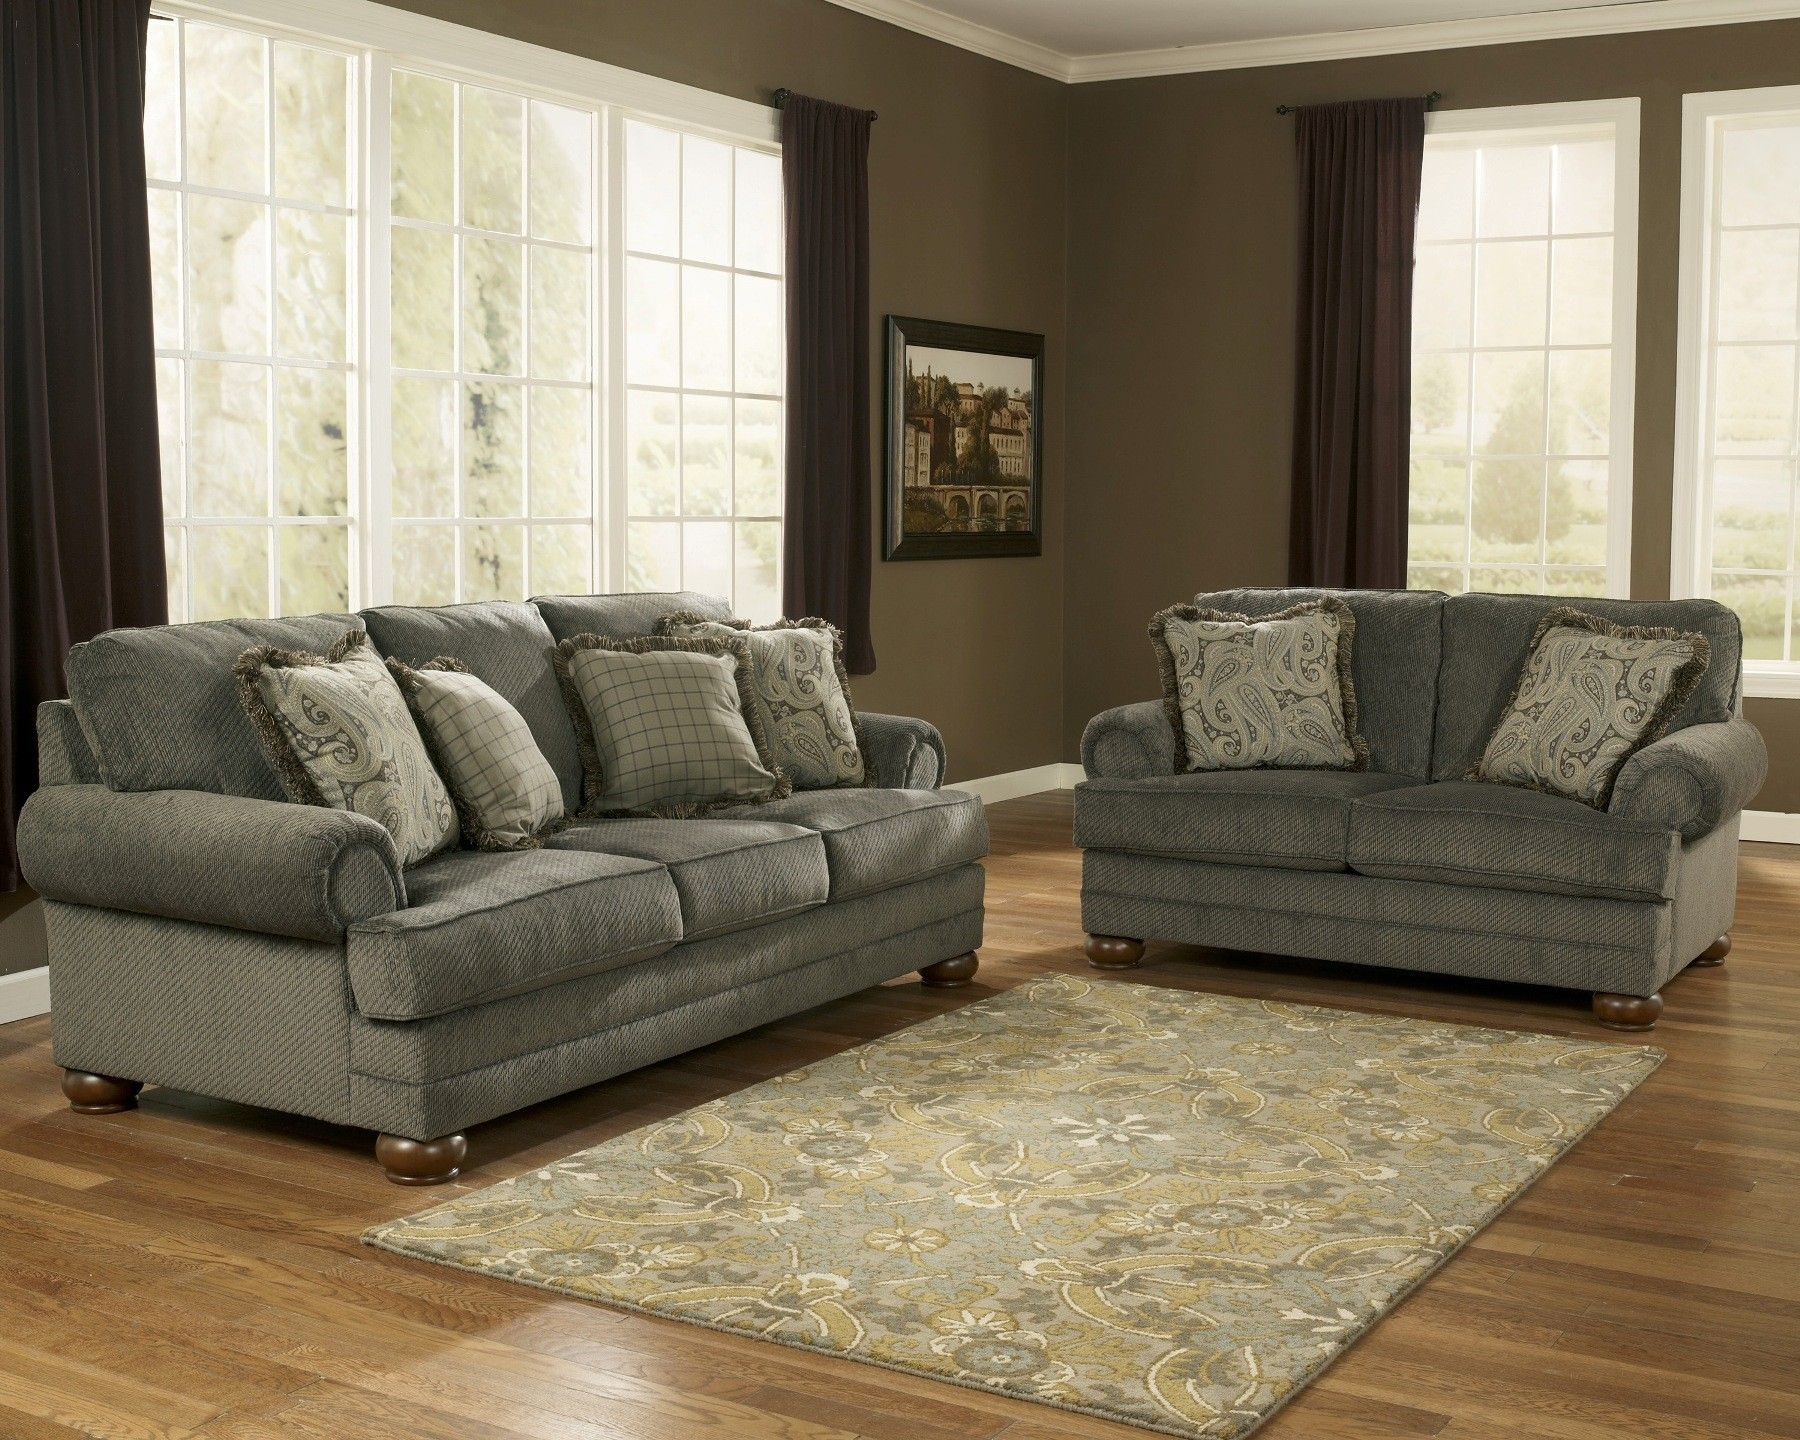 Leather Couches For couches for